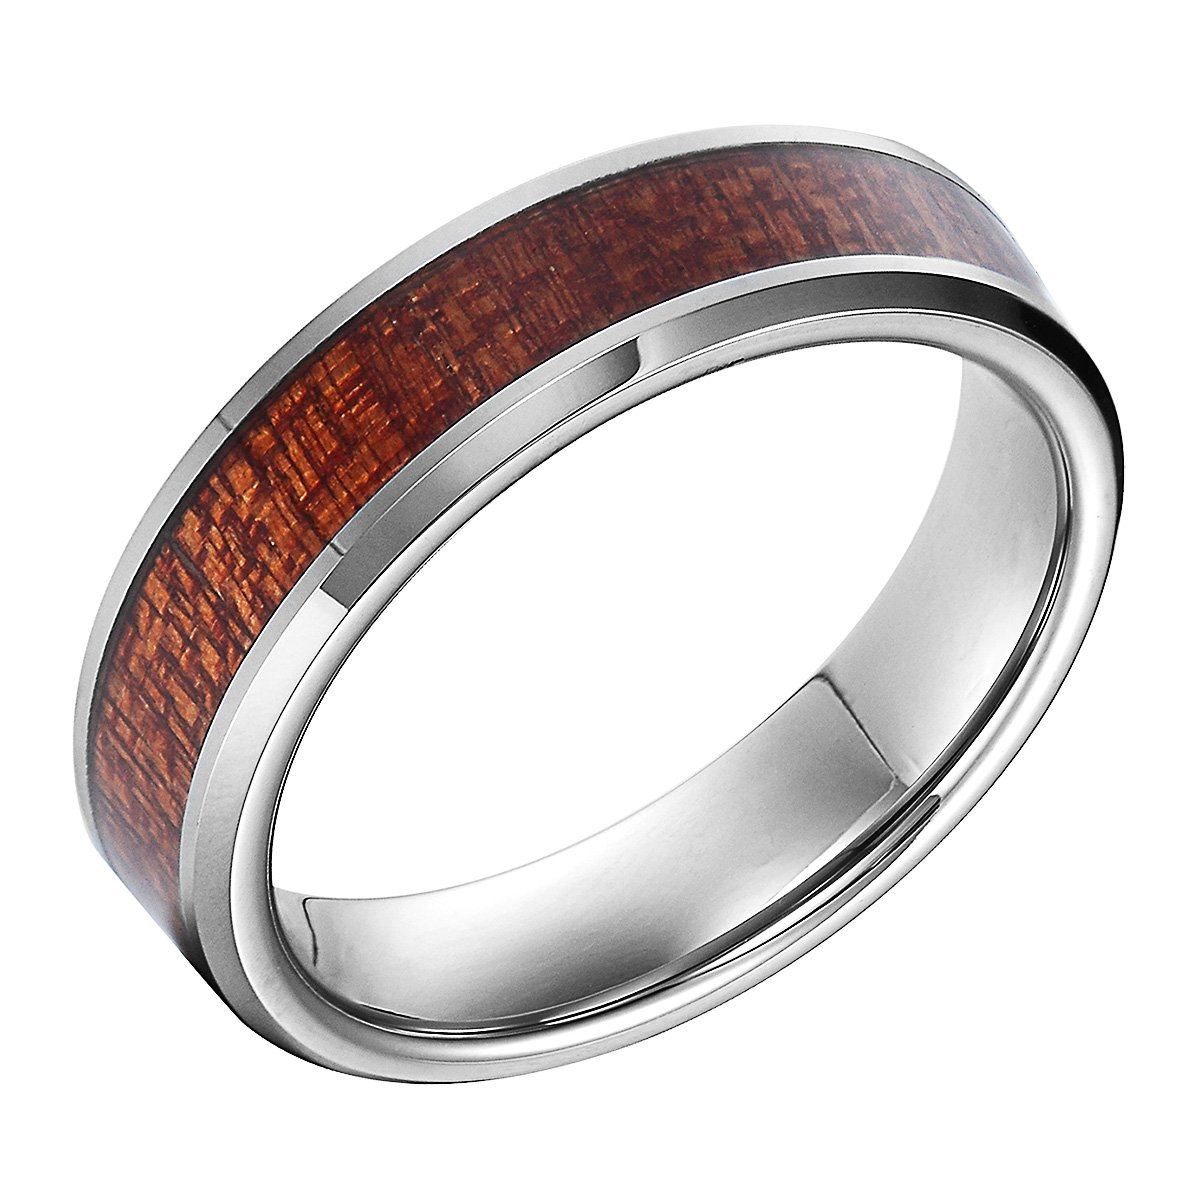 6mm Tungsten Carbide Inlay Wood Grain Bevel Edge Comfort Fit Couple Anniversary/Engagement/Wedding Band Ring (9)